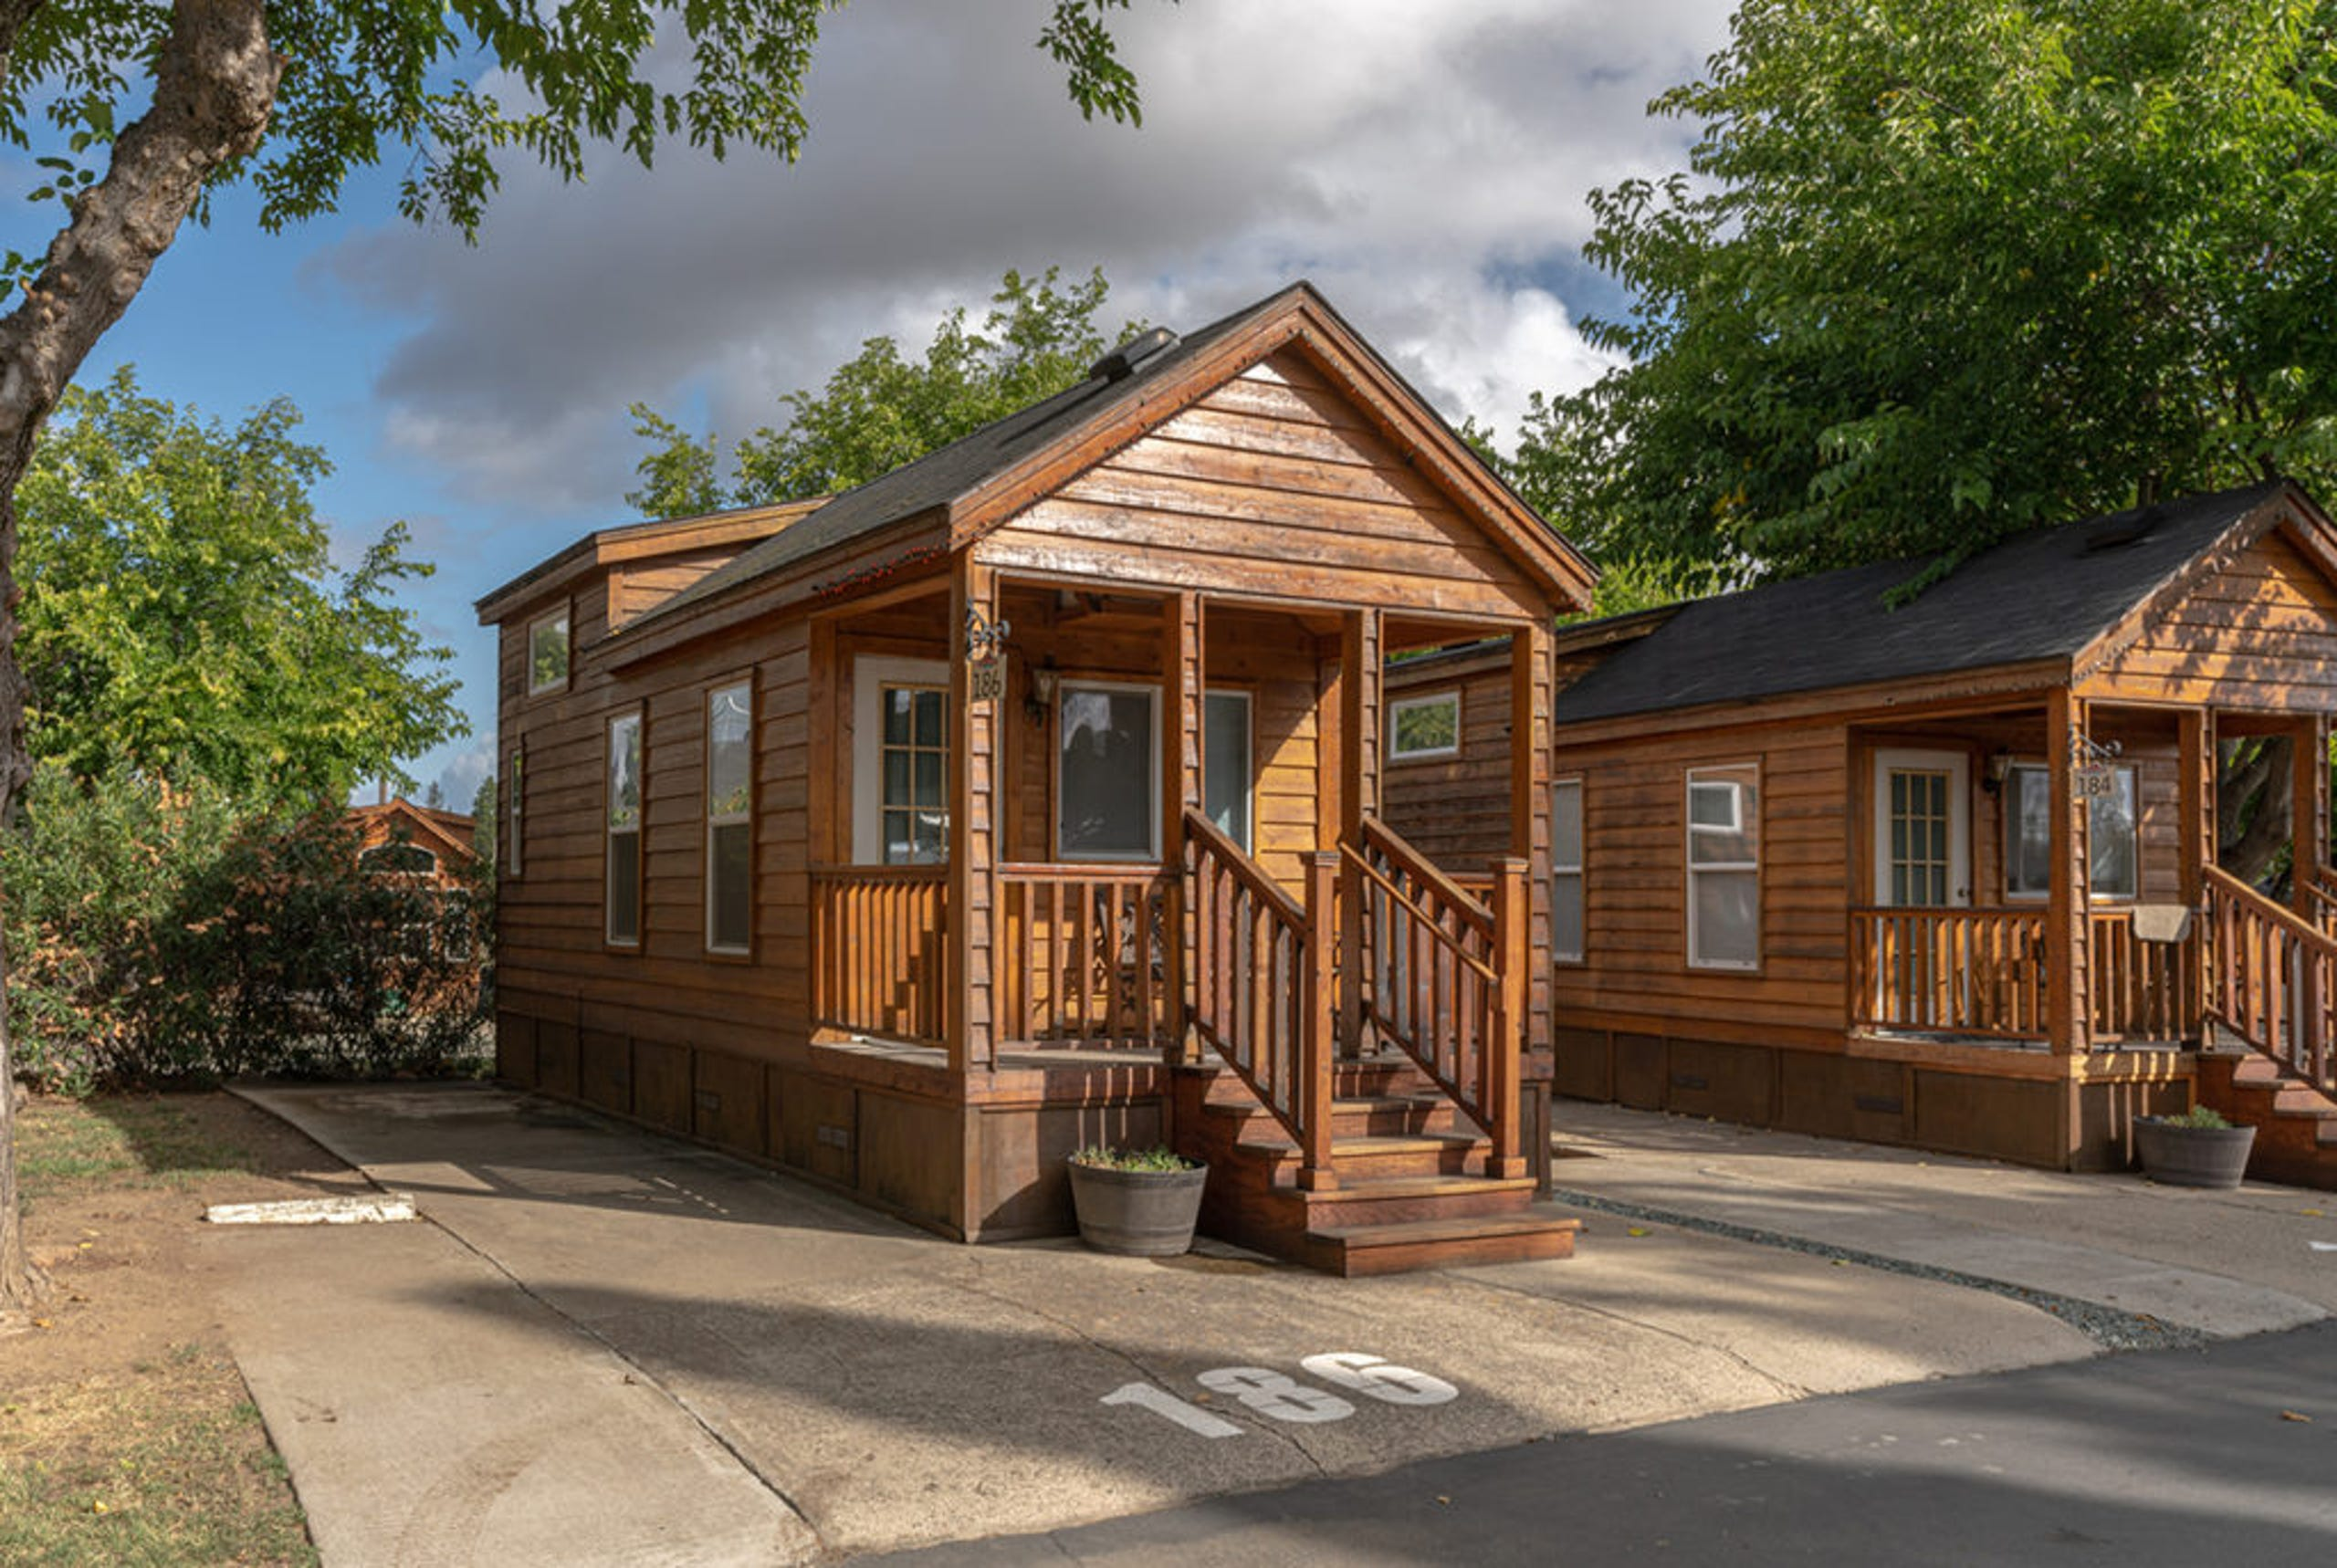 <strong>8. 49er Village RV Resort (Plymouth, California)</strong><br /> Guests at this Sacramento-area resort can take a dip in the swimming pools and hot tub, enjoy a game of shuffleboard, horseshoes or billiards. It has 2,691&nbsp;advance reservations for 2021.&nbsp;